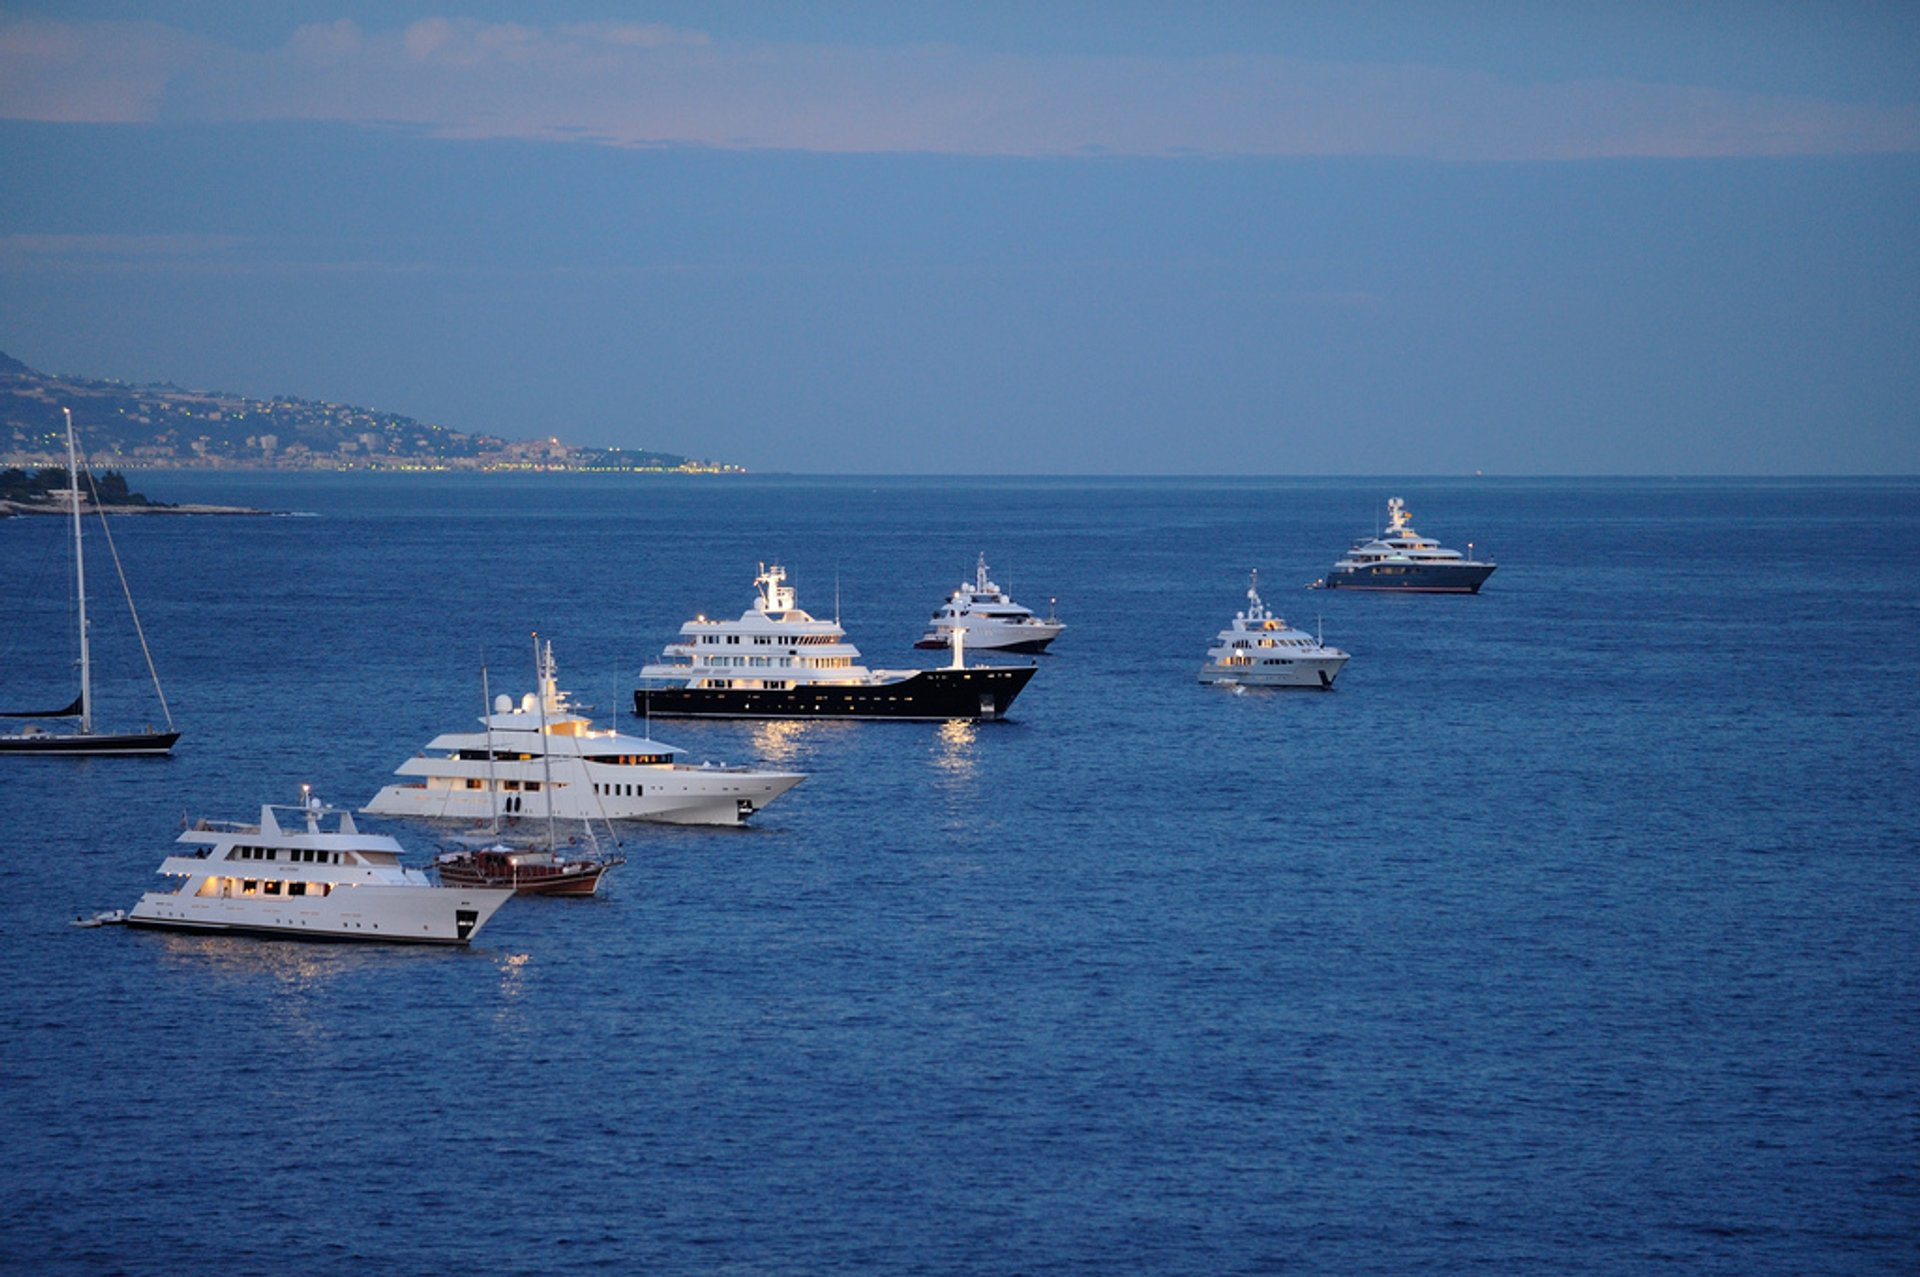 Monaco Yacht Show in Monaco - Best Season 2020